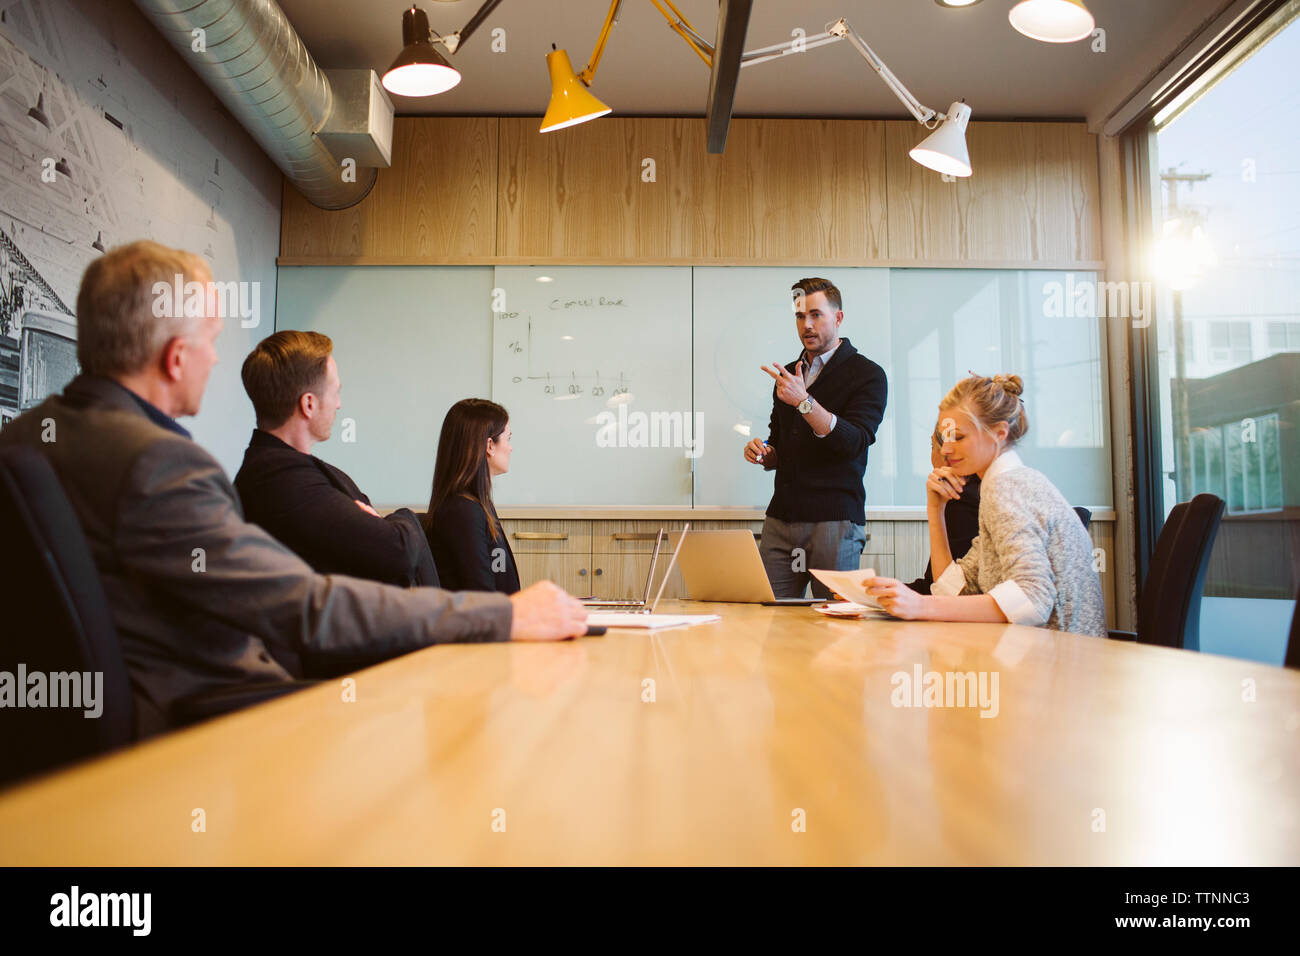 Businessman giving presentation to colleagues in board room - Stock Image